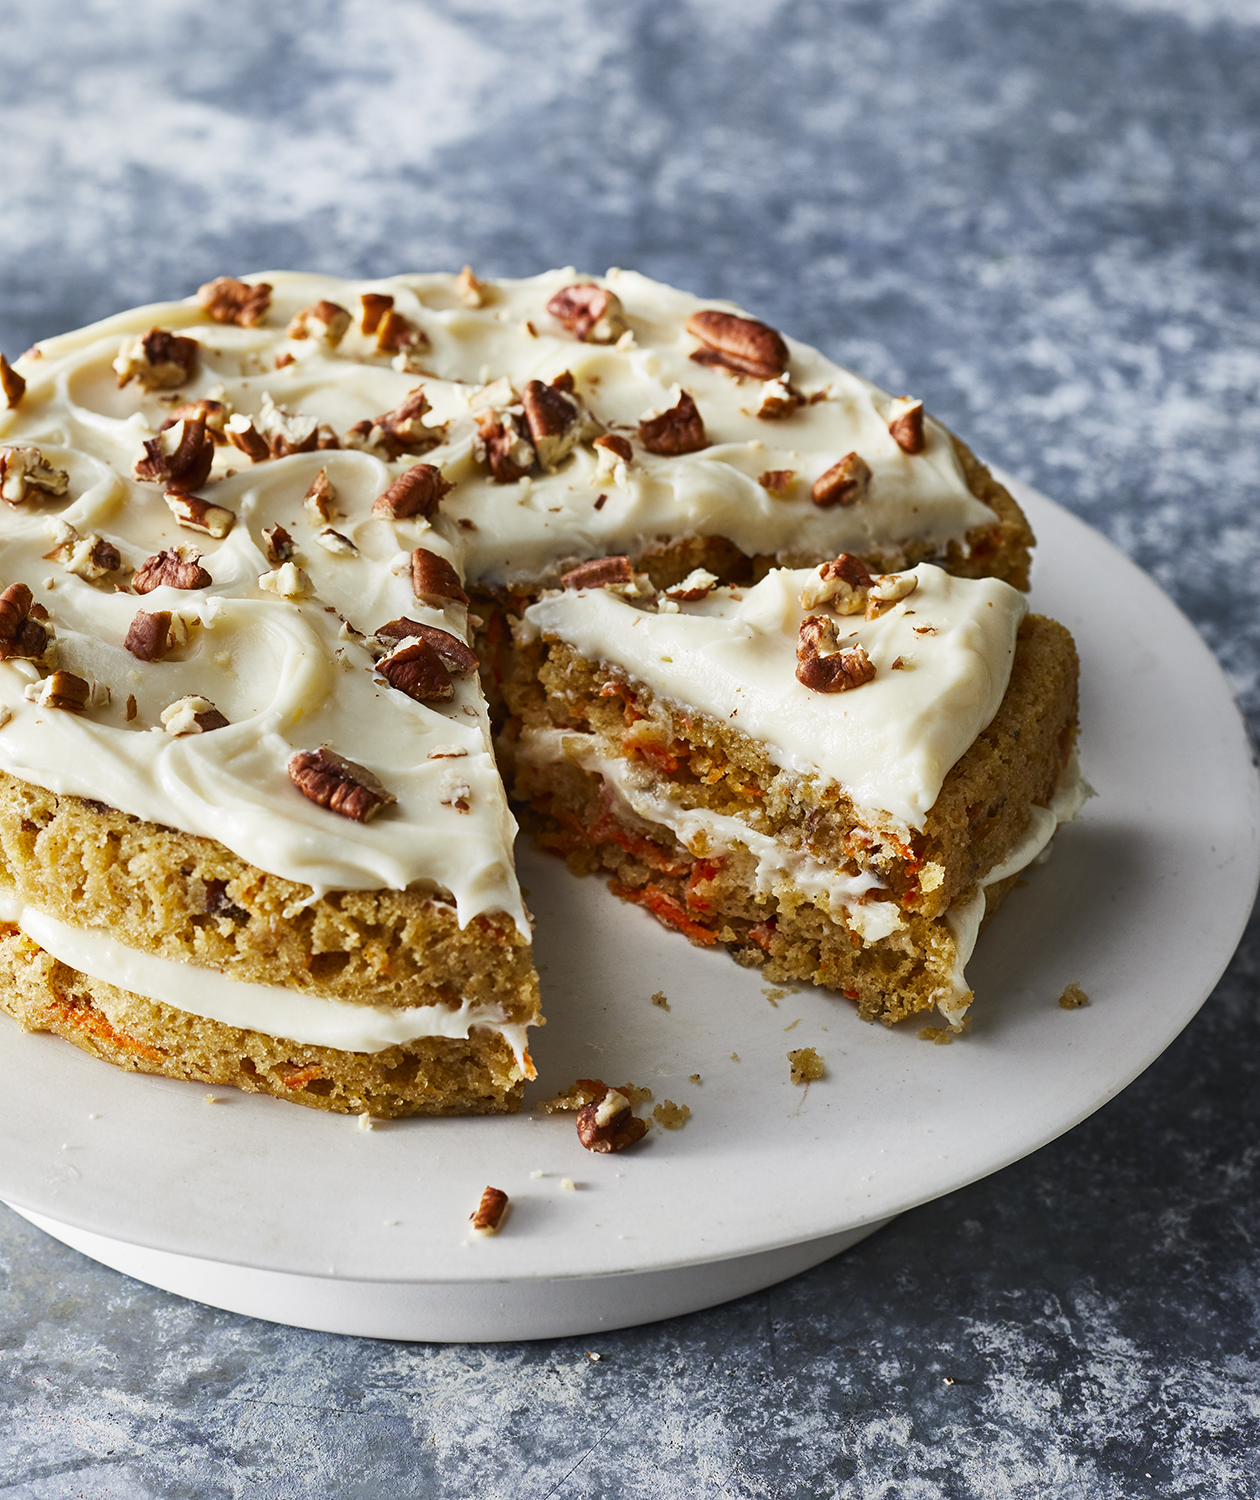 Slow-Cooker Carrot Cake